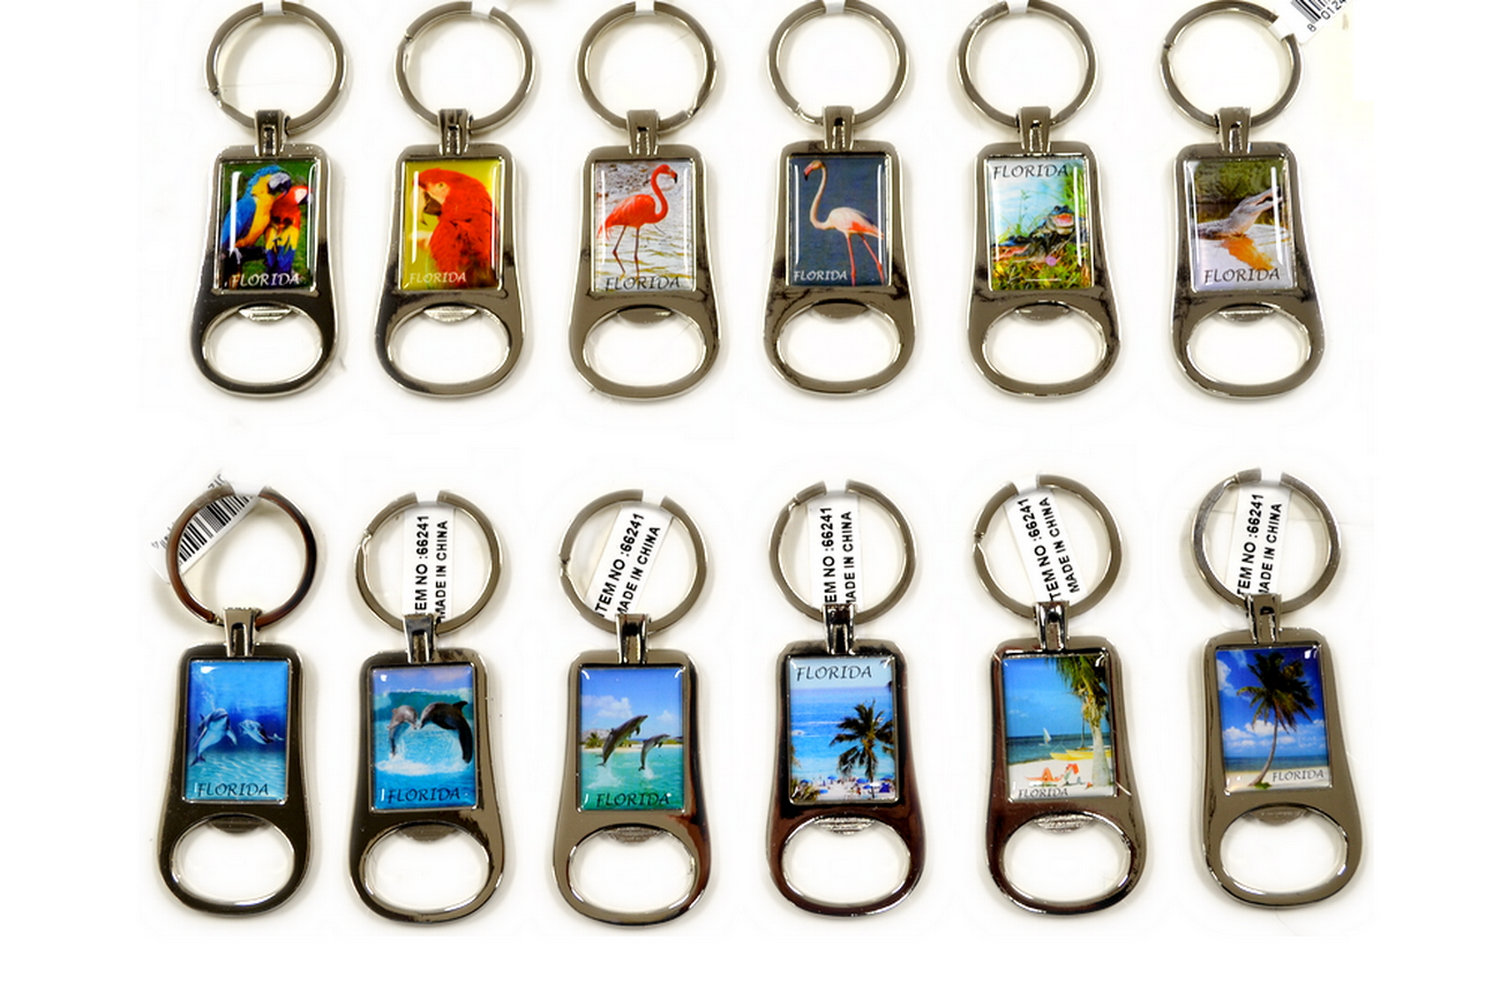 FLORIDA BOTTLE OPENER KEY CHAIN